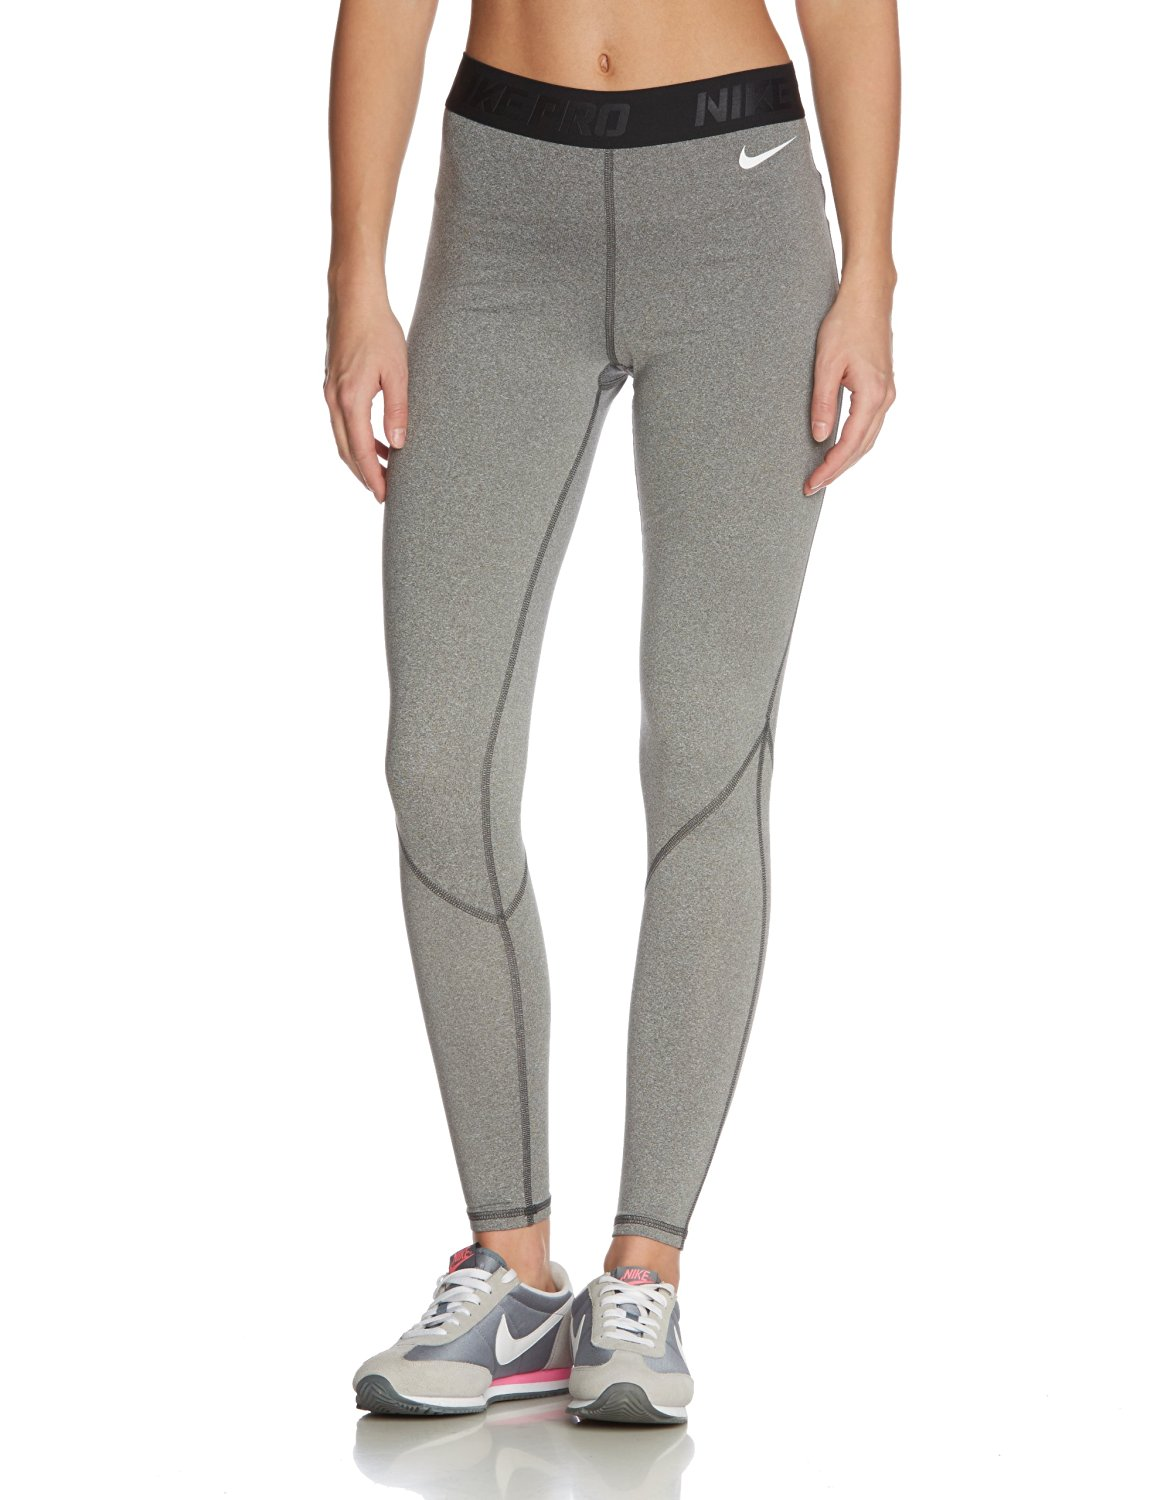 93f4b01eb4ebc Buy Nike Womens Pro Hyperwarm Dri-FIT Tights-Capri- Heather Grey [L ...